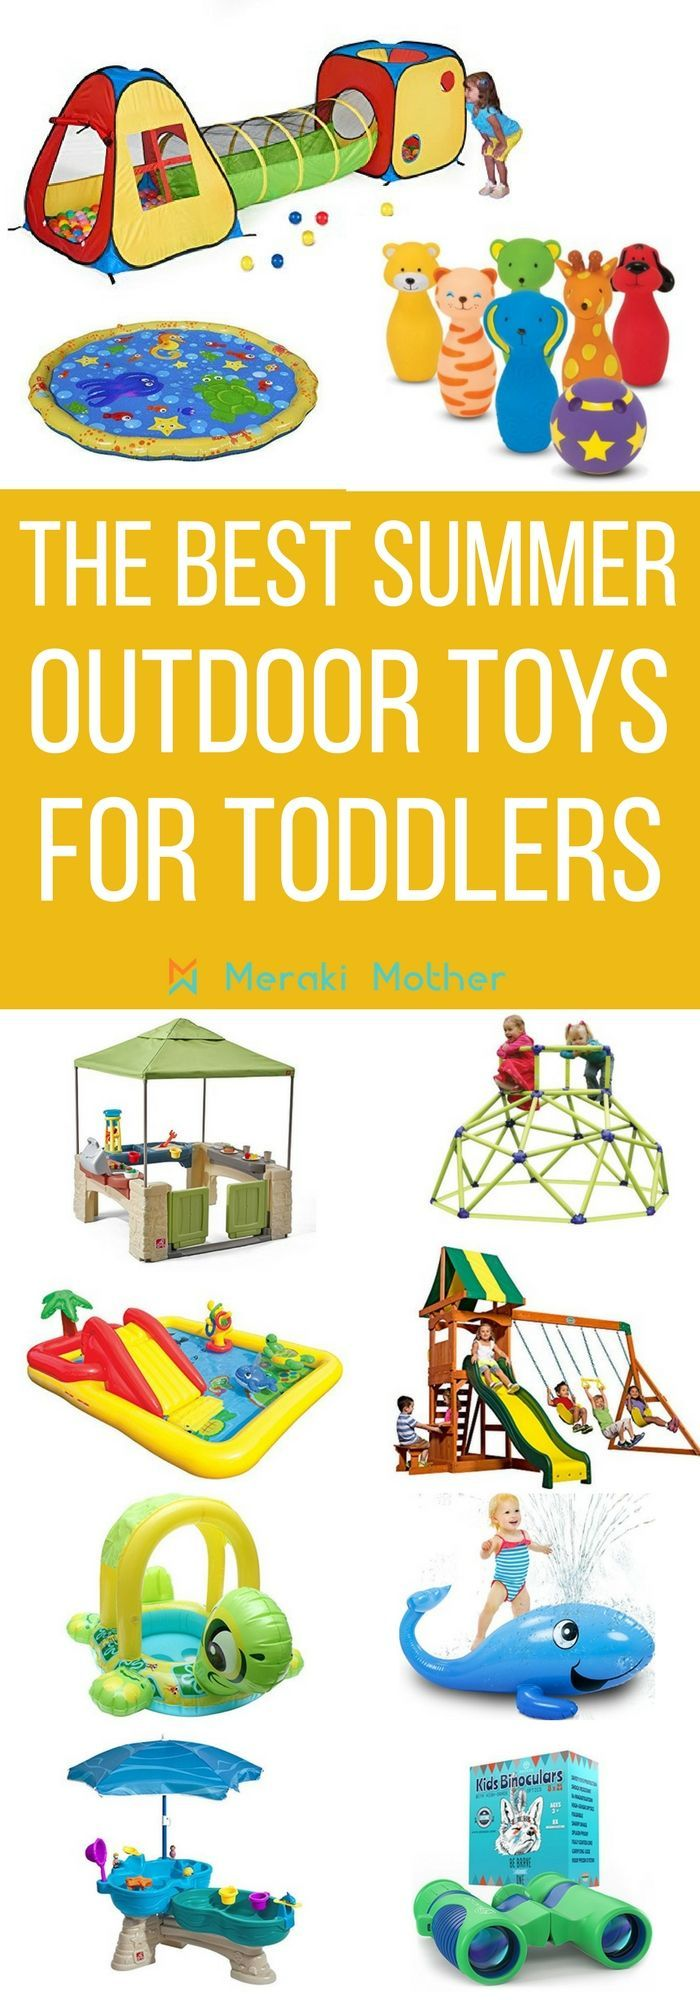 Toys images for boys  Best Outdoor Toys for Toddlers  Toddler outdoor toys Kids outdoor